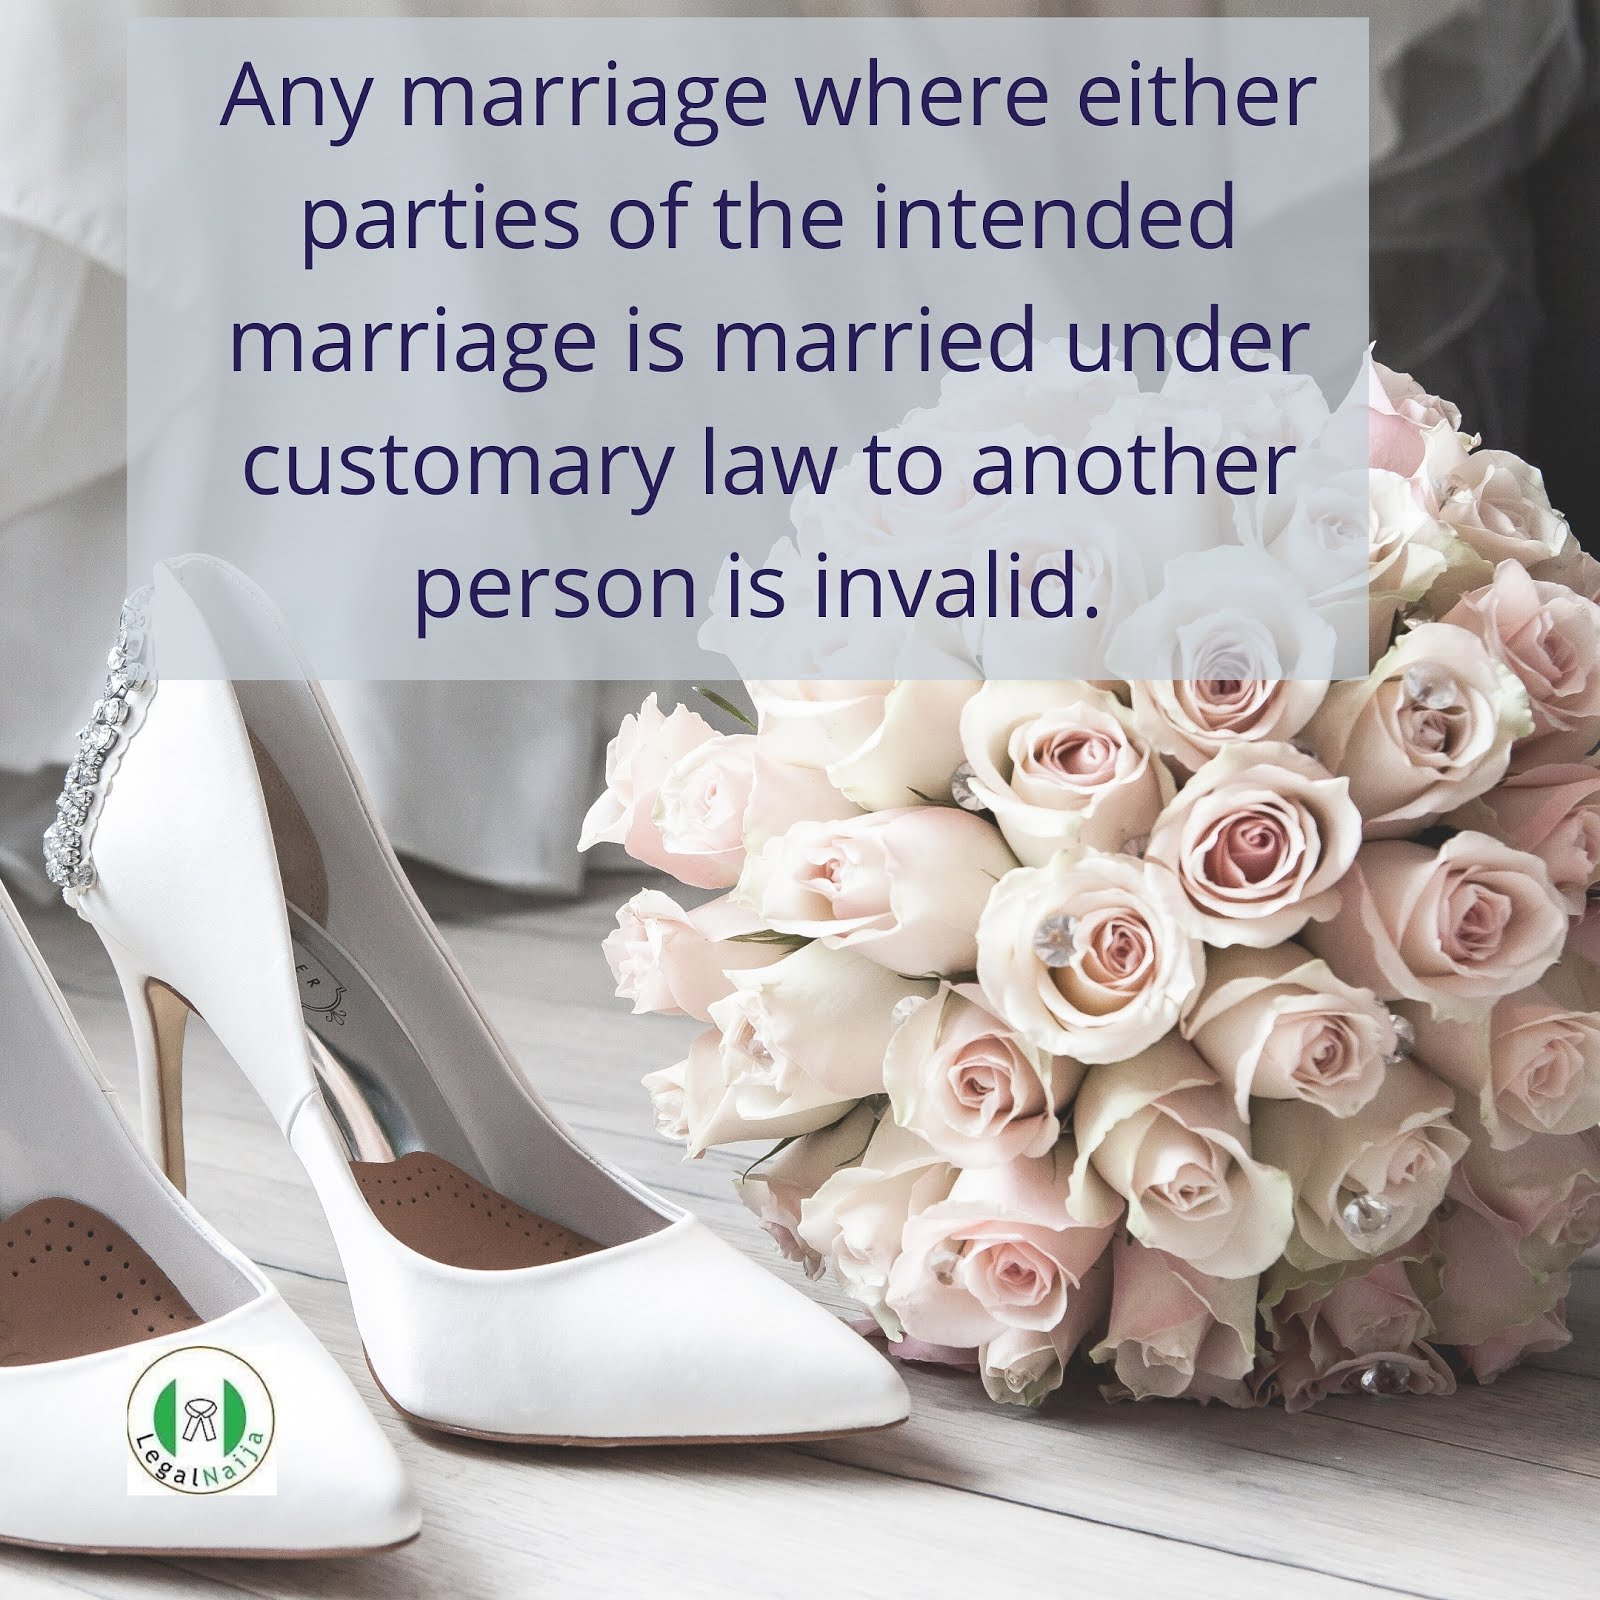 Question- Can one be married to 2 people under Statutory and Customary Law?